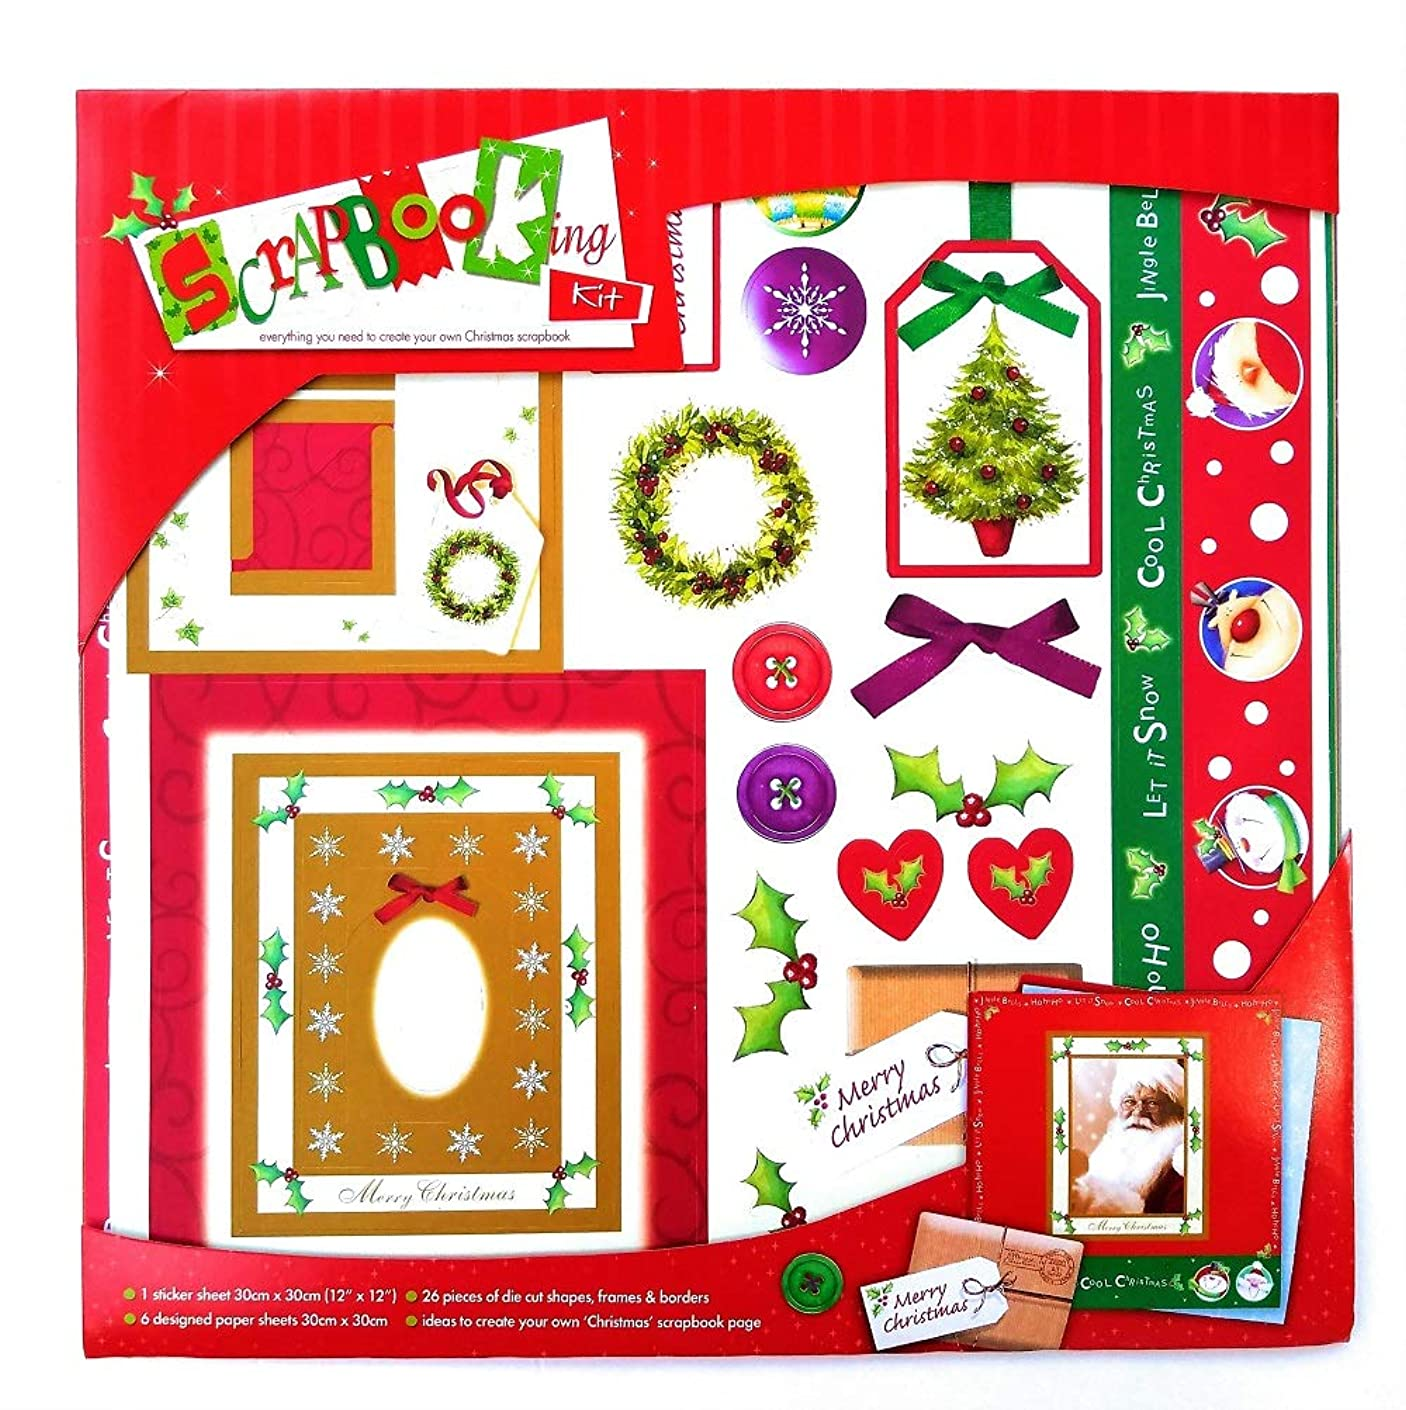 Christmas Scrap Booking Kit - Everything You Need to Create Your Own Christmas Scrapbook